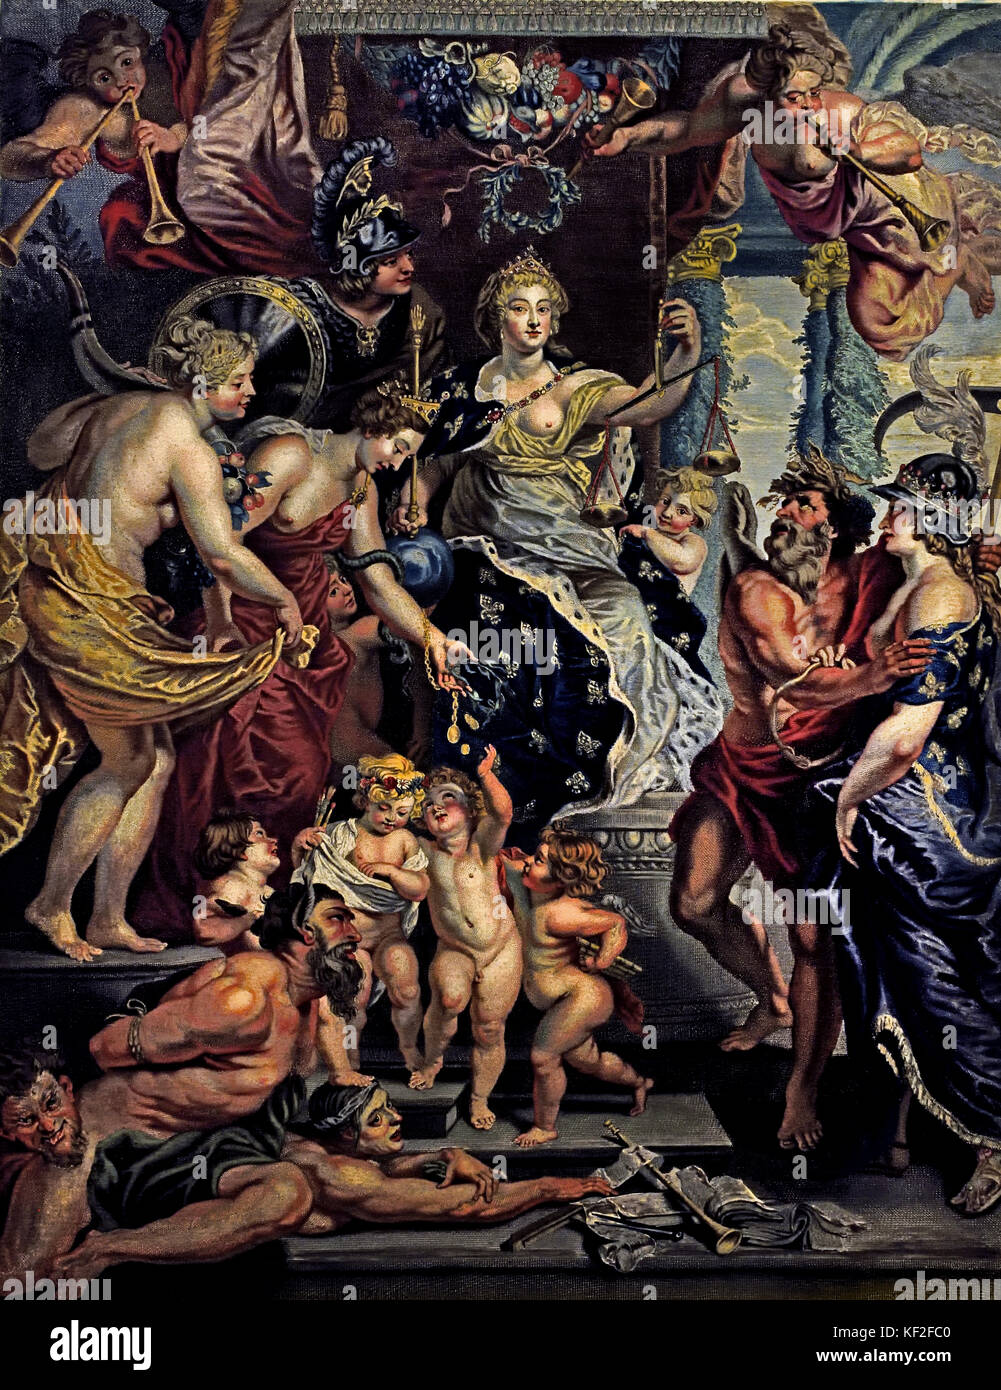 The Felicity of the Regency of Marie de' Medici  - The Marie de' Medici Cycle 1622-1624  by Peter Paul Rubens - Stock Image